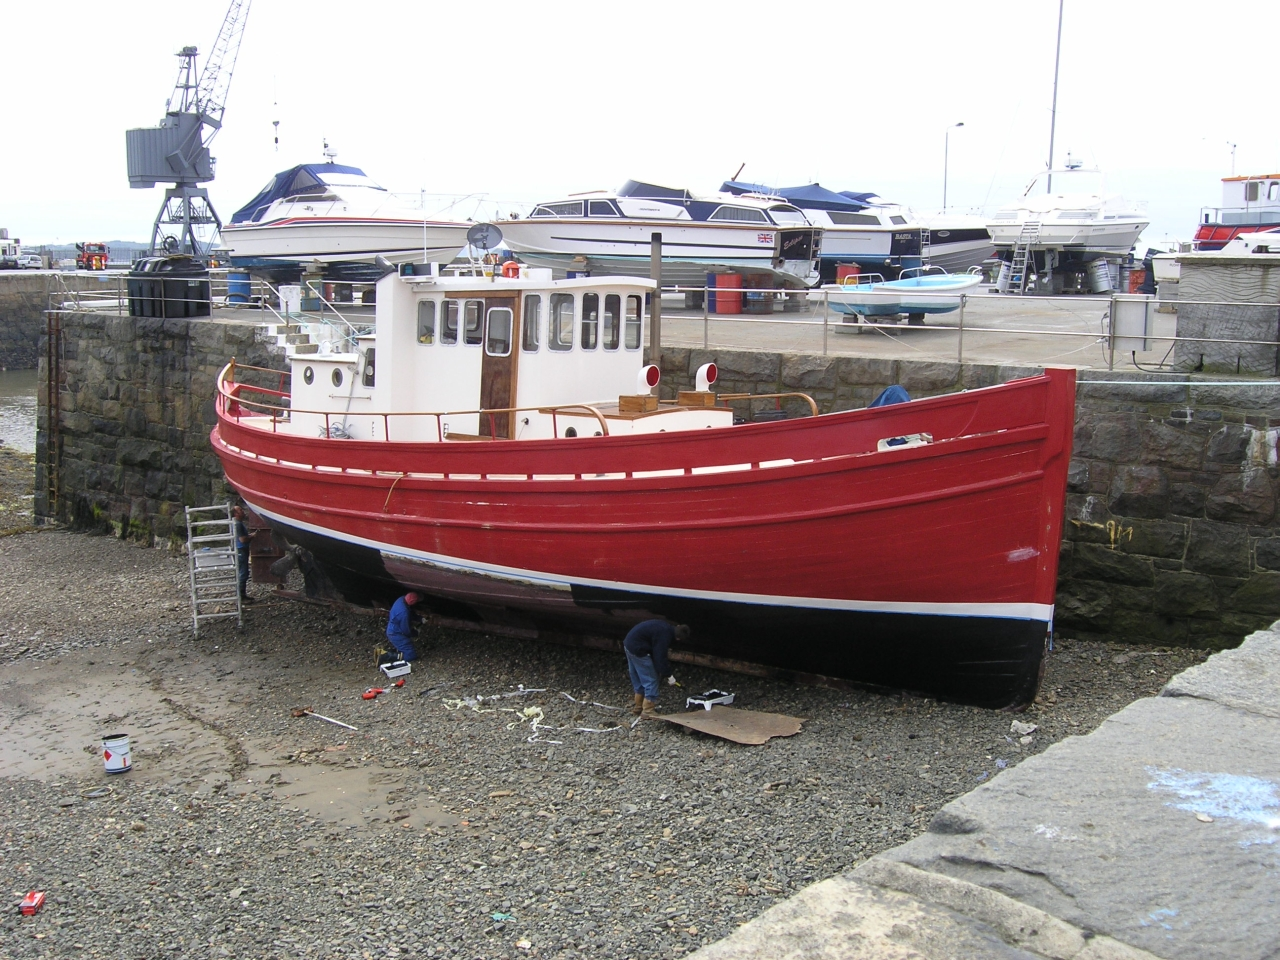 ... . She must be one of the last remaining Scottish Zulu fishing boats